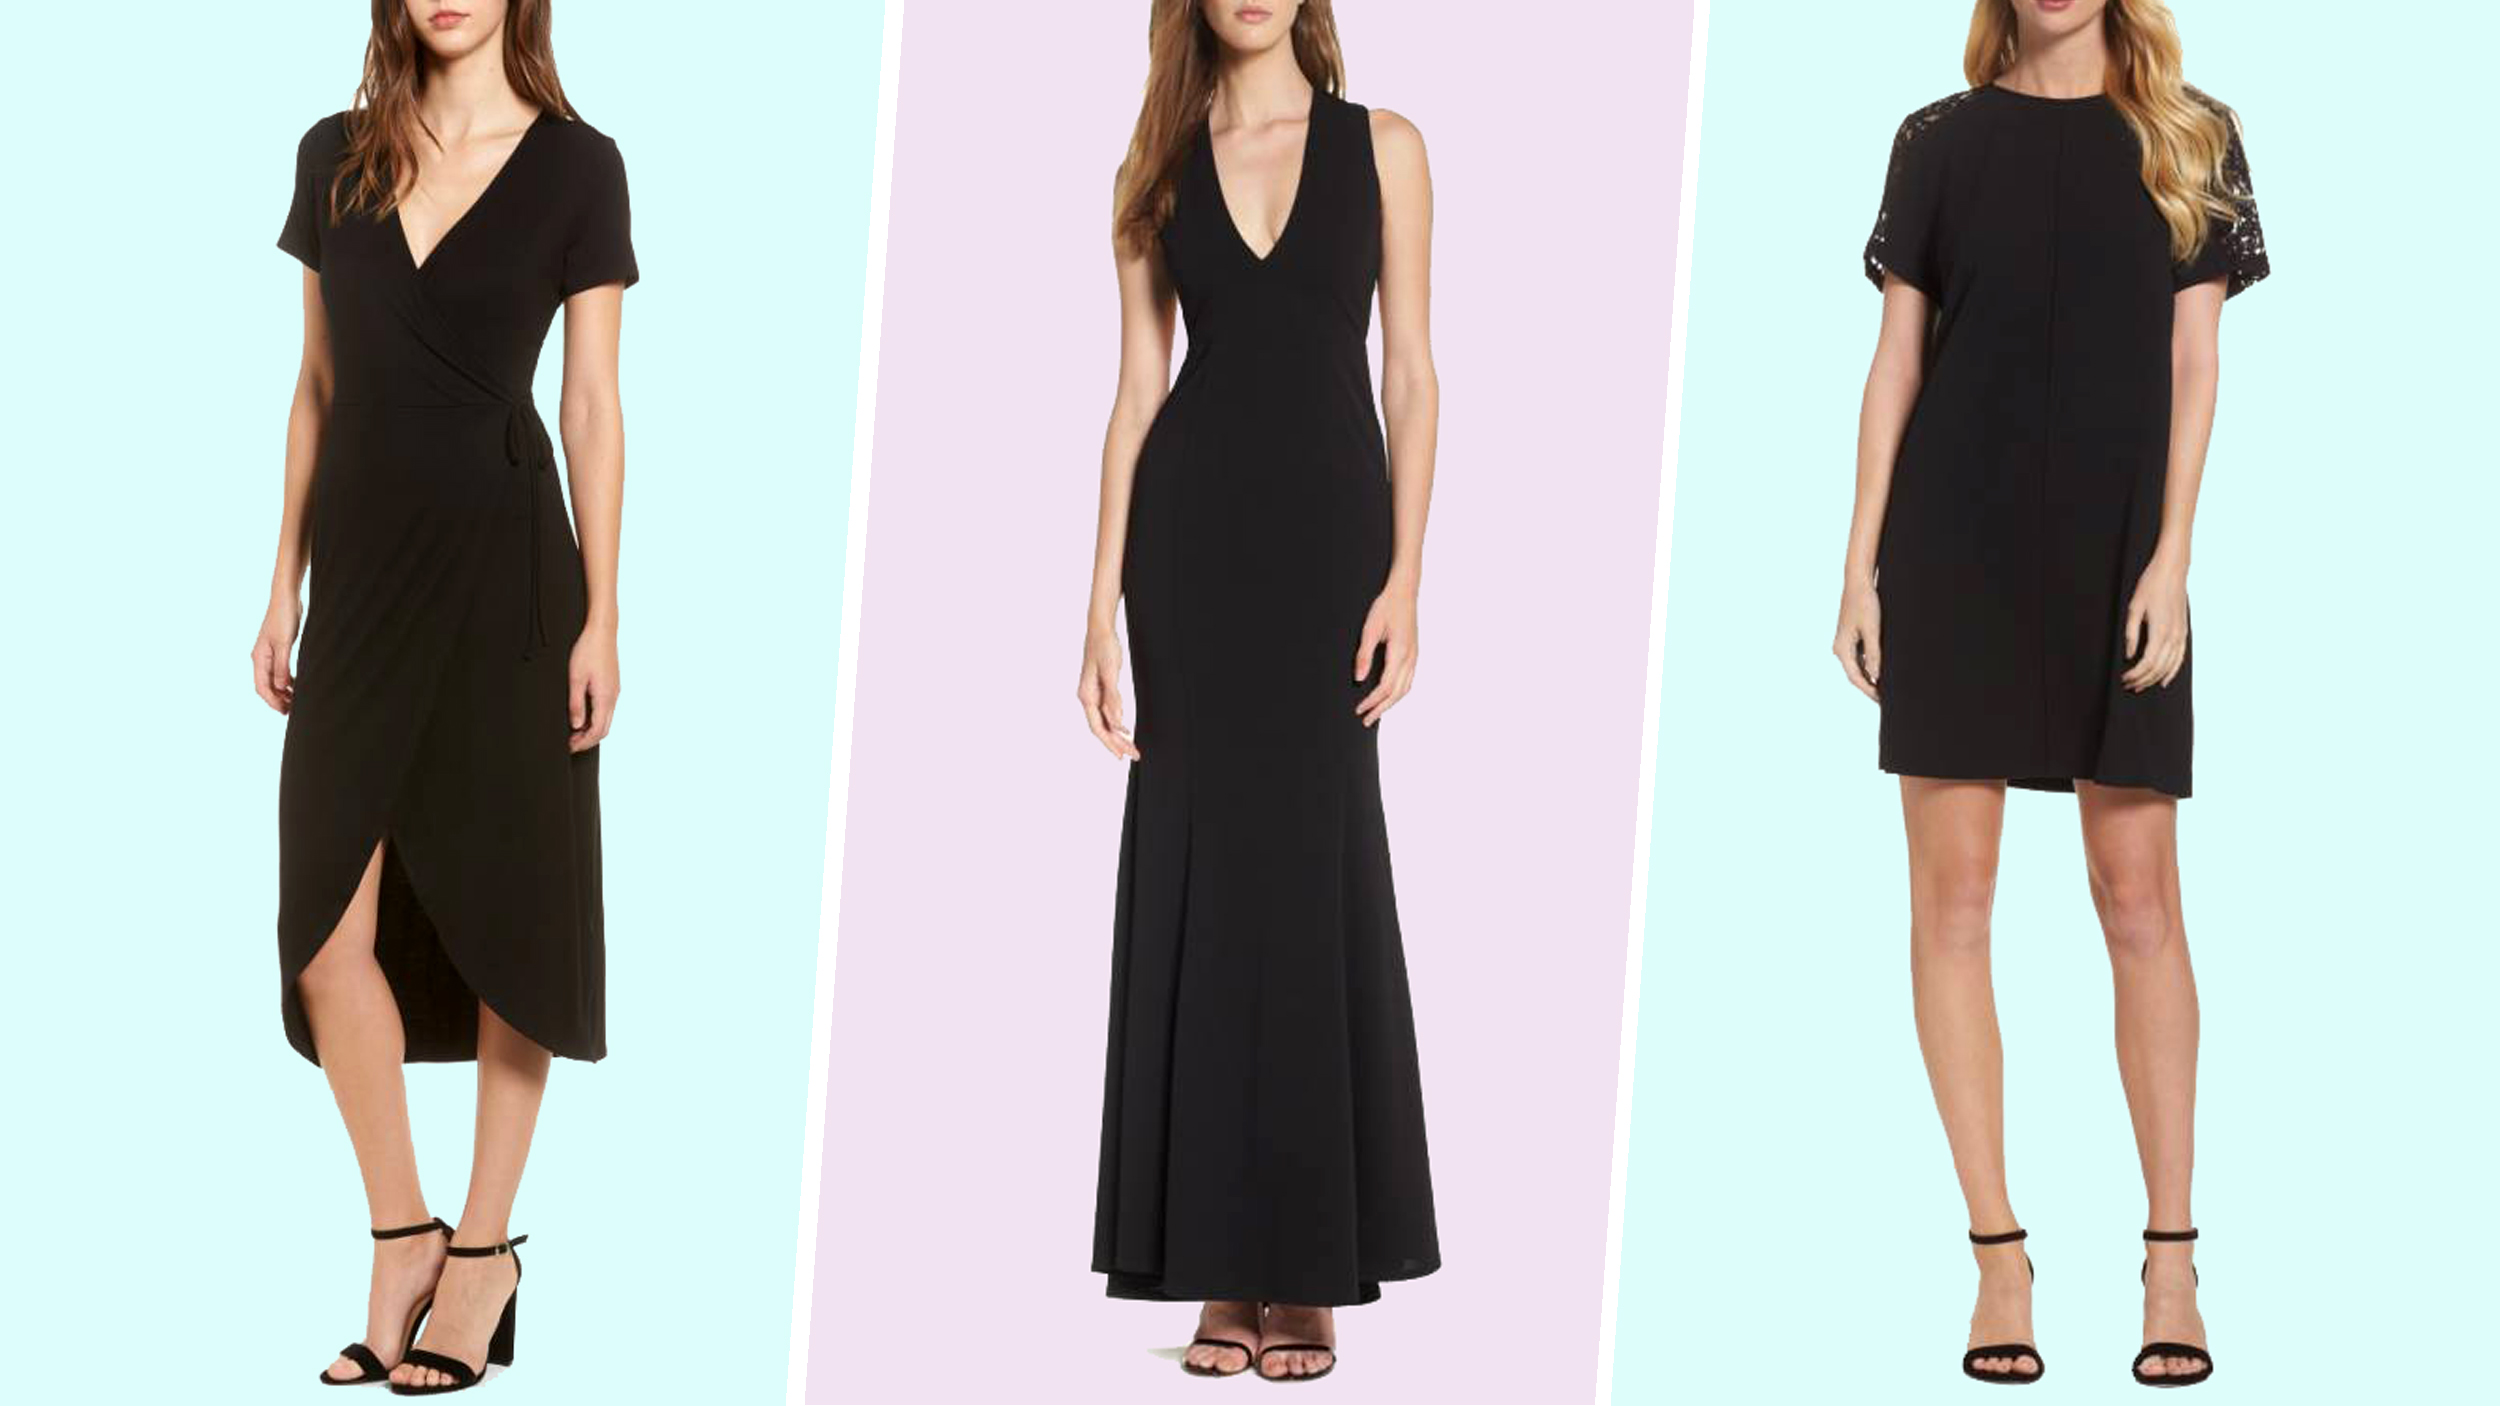 The 7 little black dresses every woman needs - TODAY.com